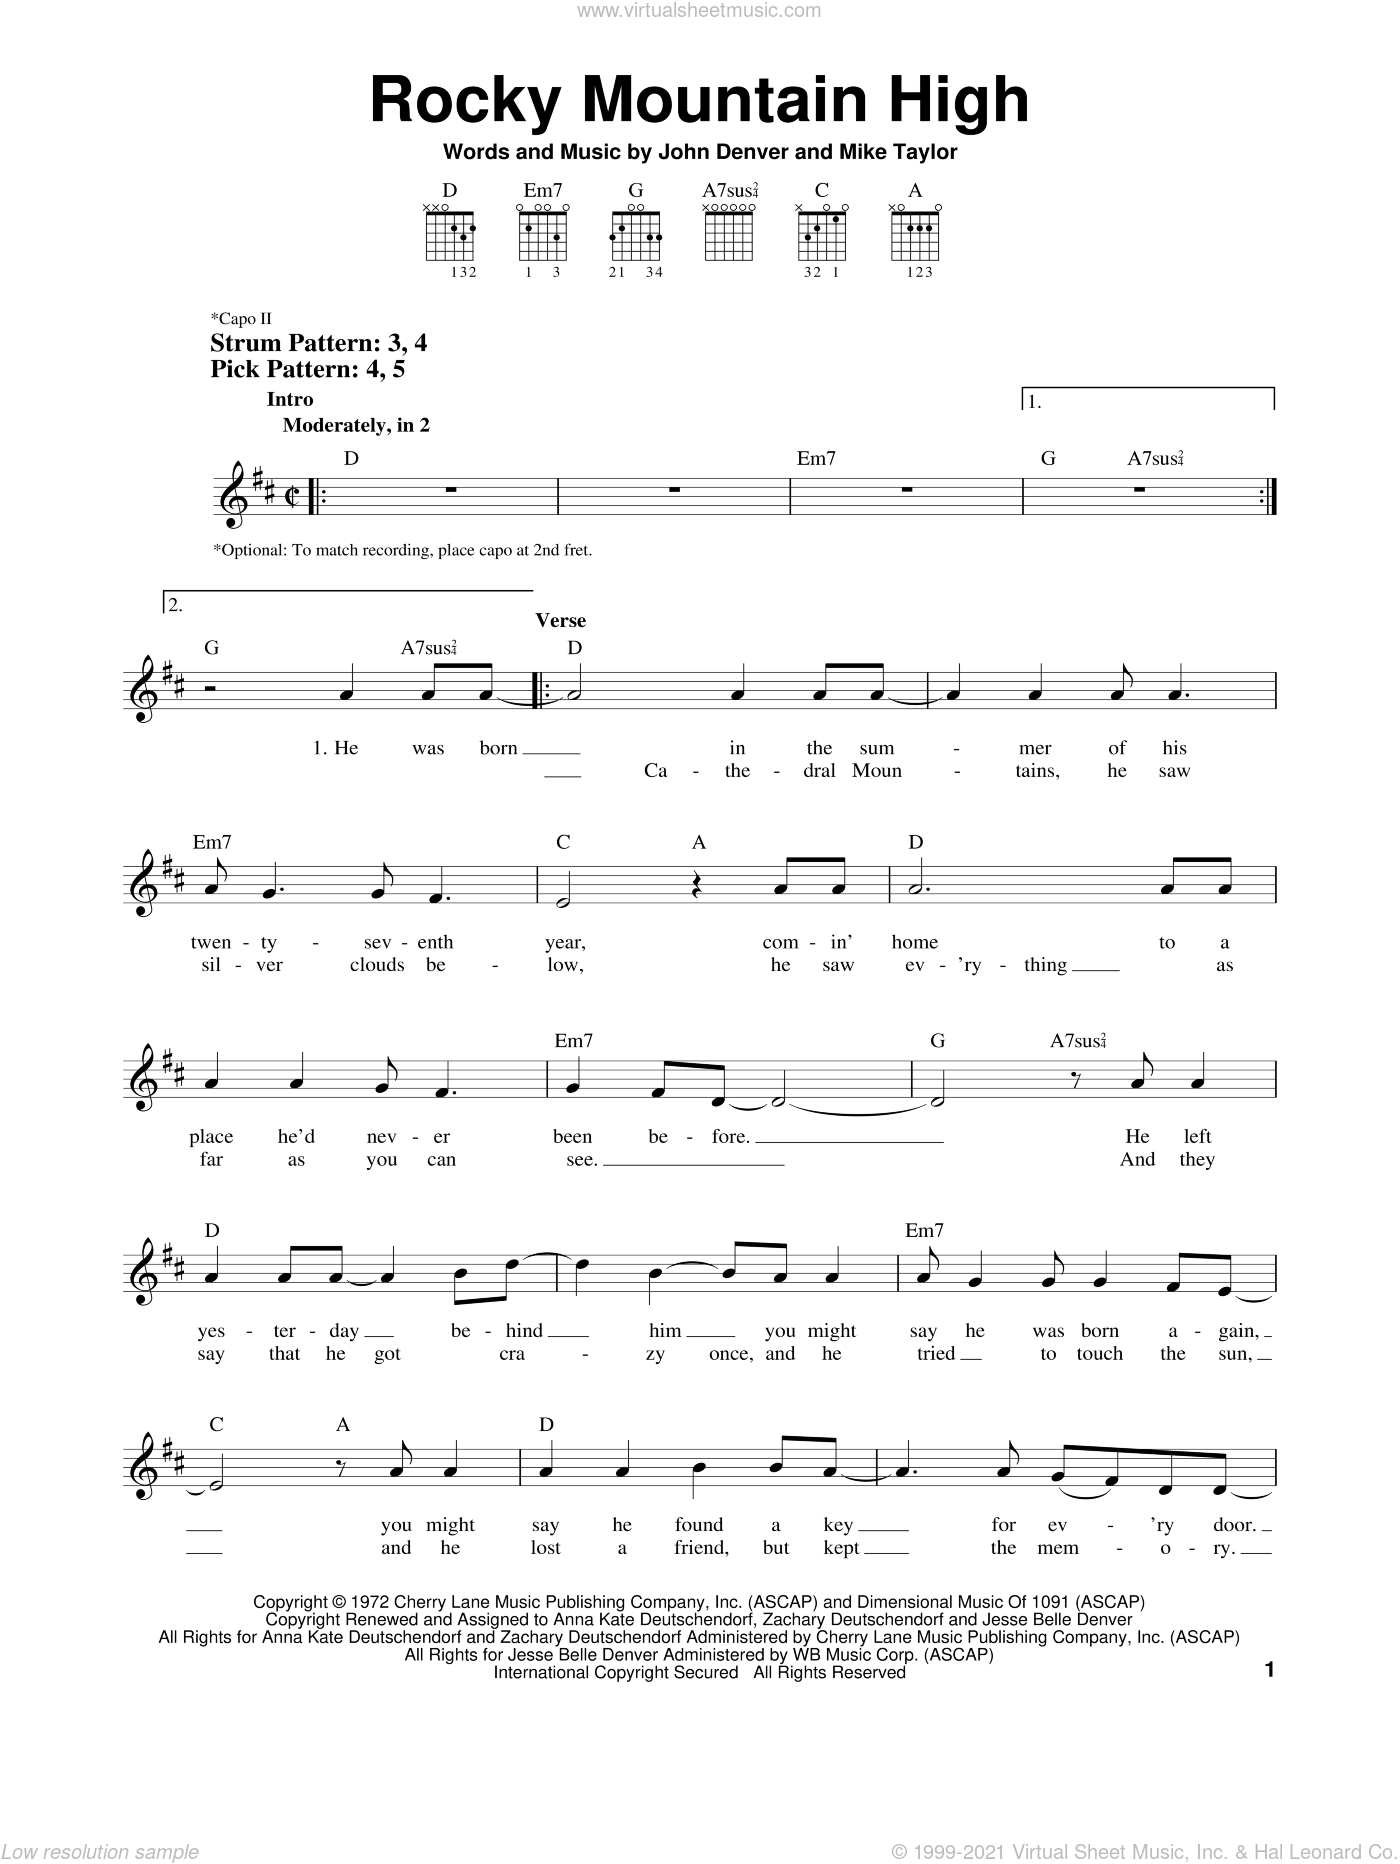 Rocky Mountain High sheet music for guitar solo (chords) by Mike Taylor